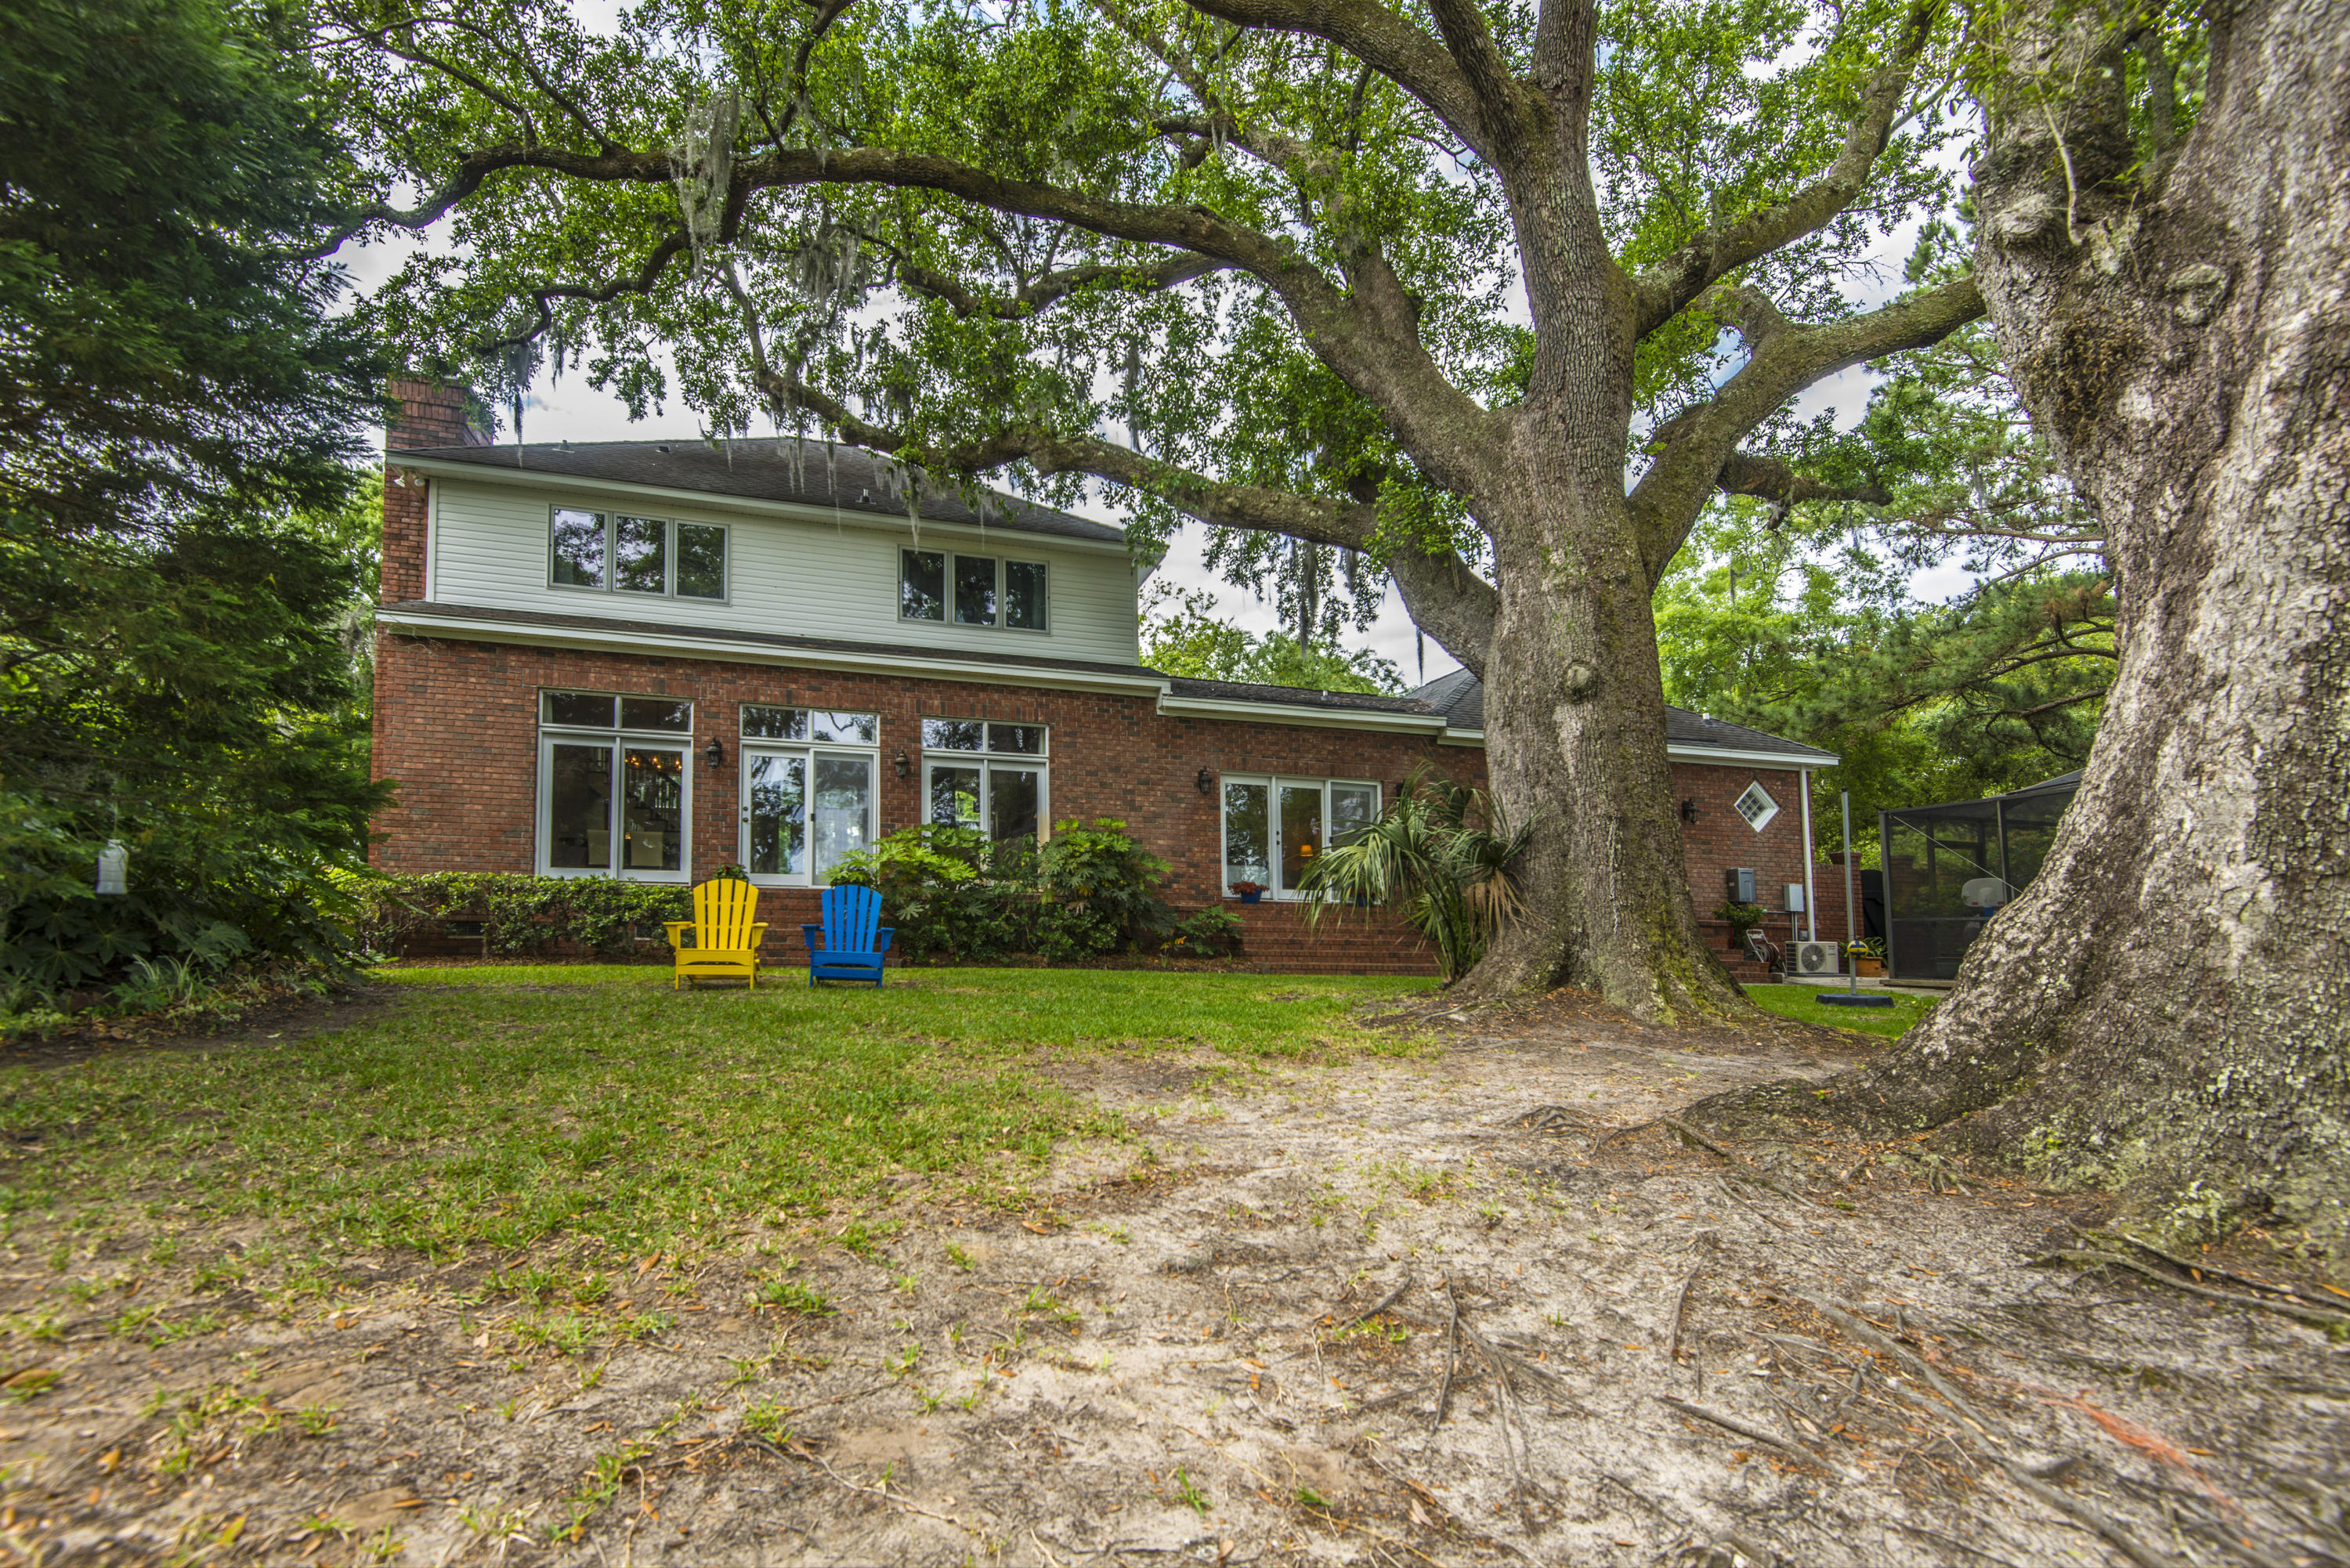 Stiles Point Plantation Homes For Sale - 921 Cotton House, Charleston, SC - 6